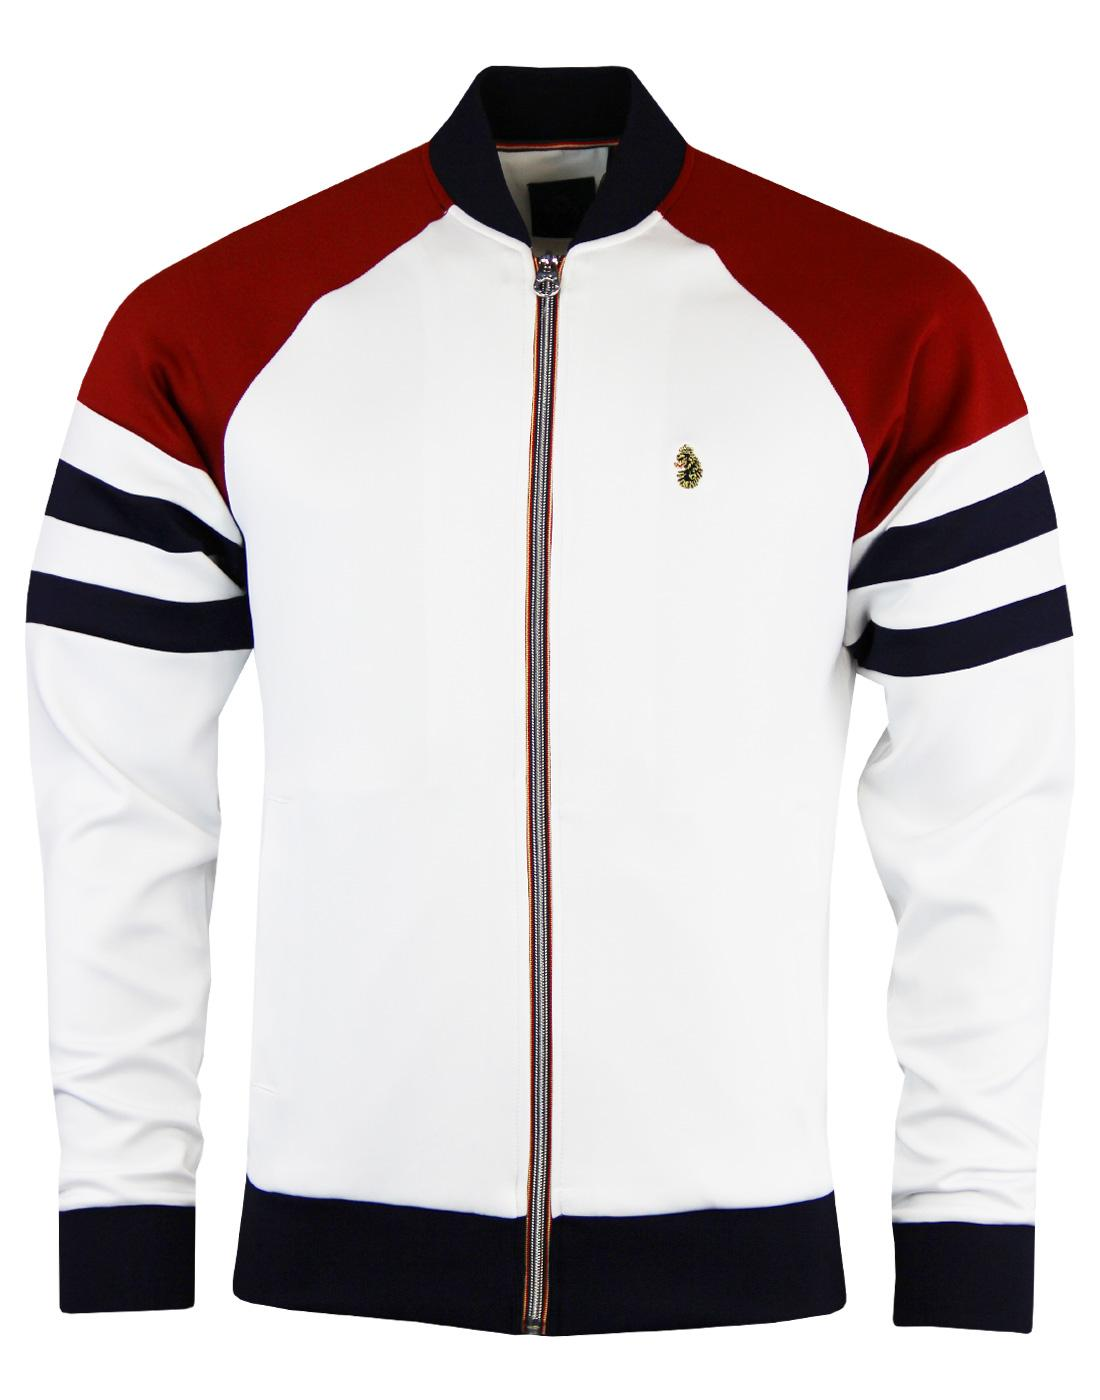 Mo LUKE 1977 Colour Block Bomber Collar Track Top